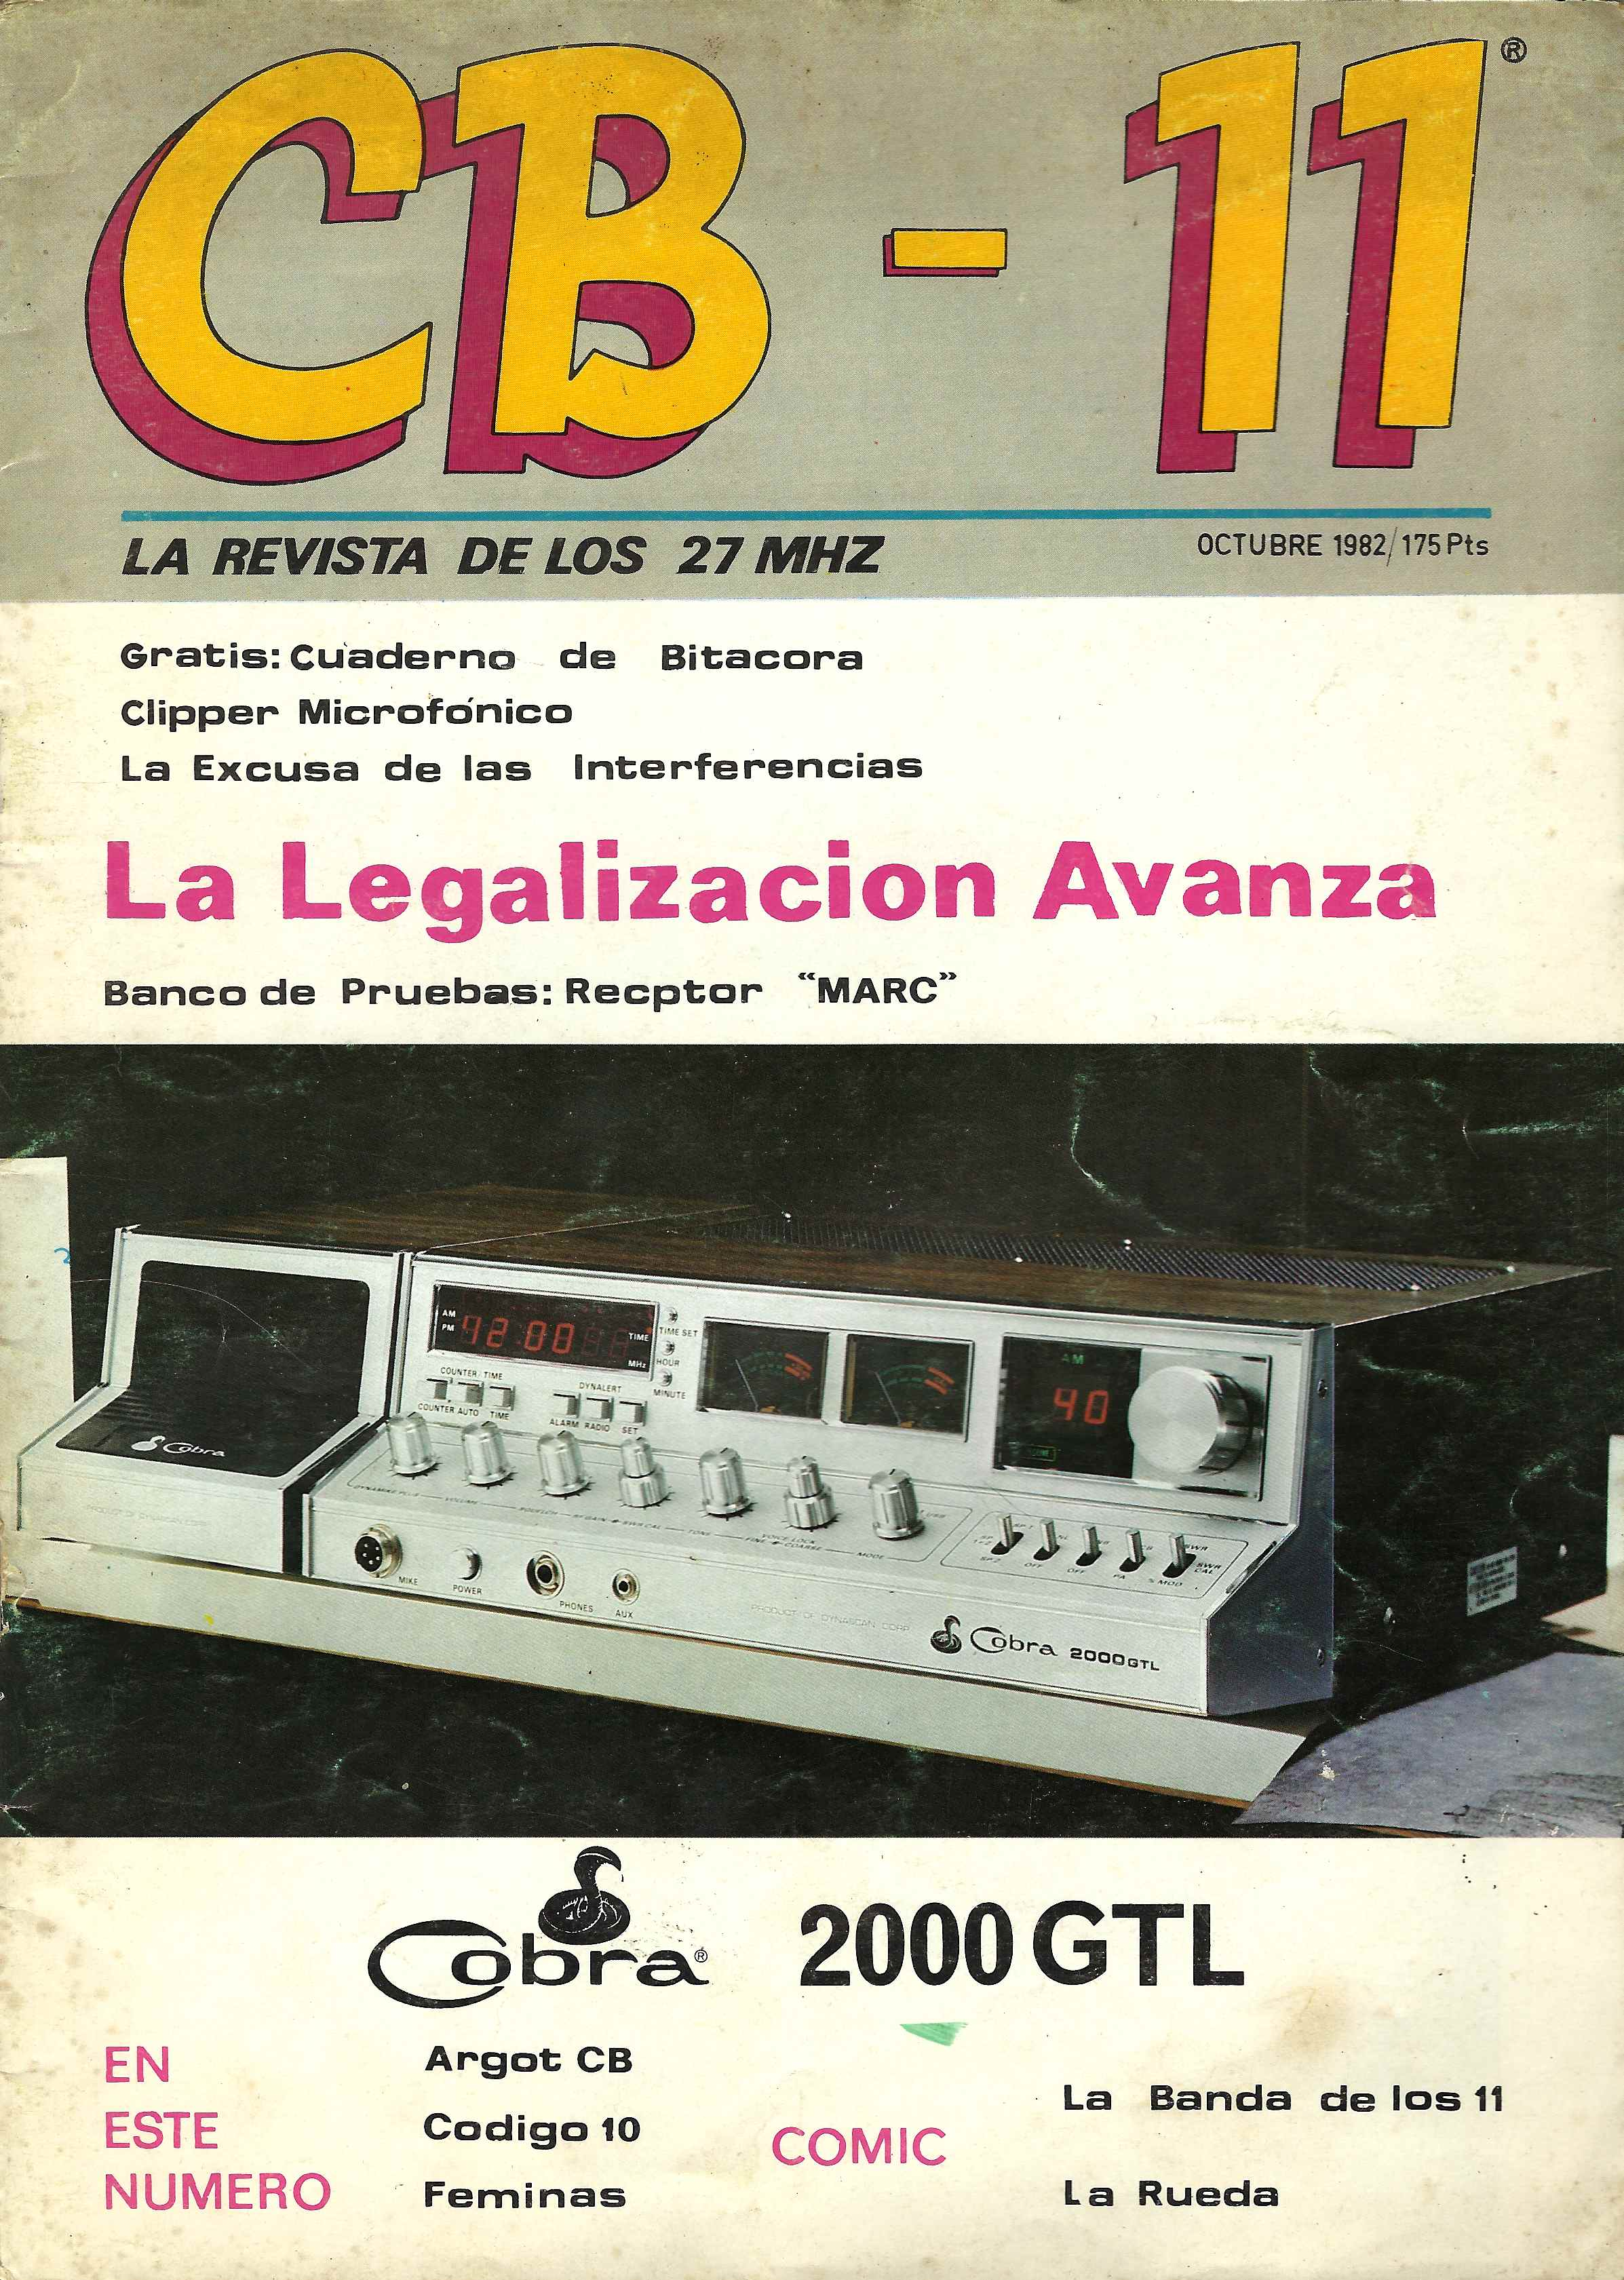 http://rclubvic.files.wordpress.com/2012/08/revista-cb-11.jpg